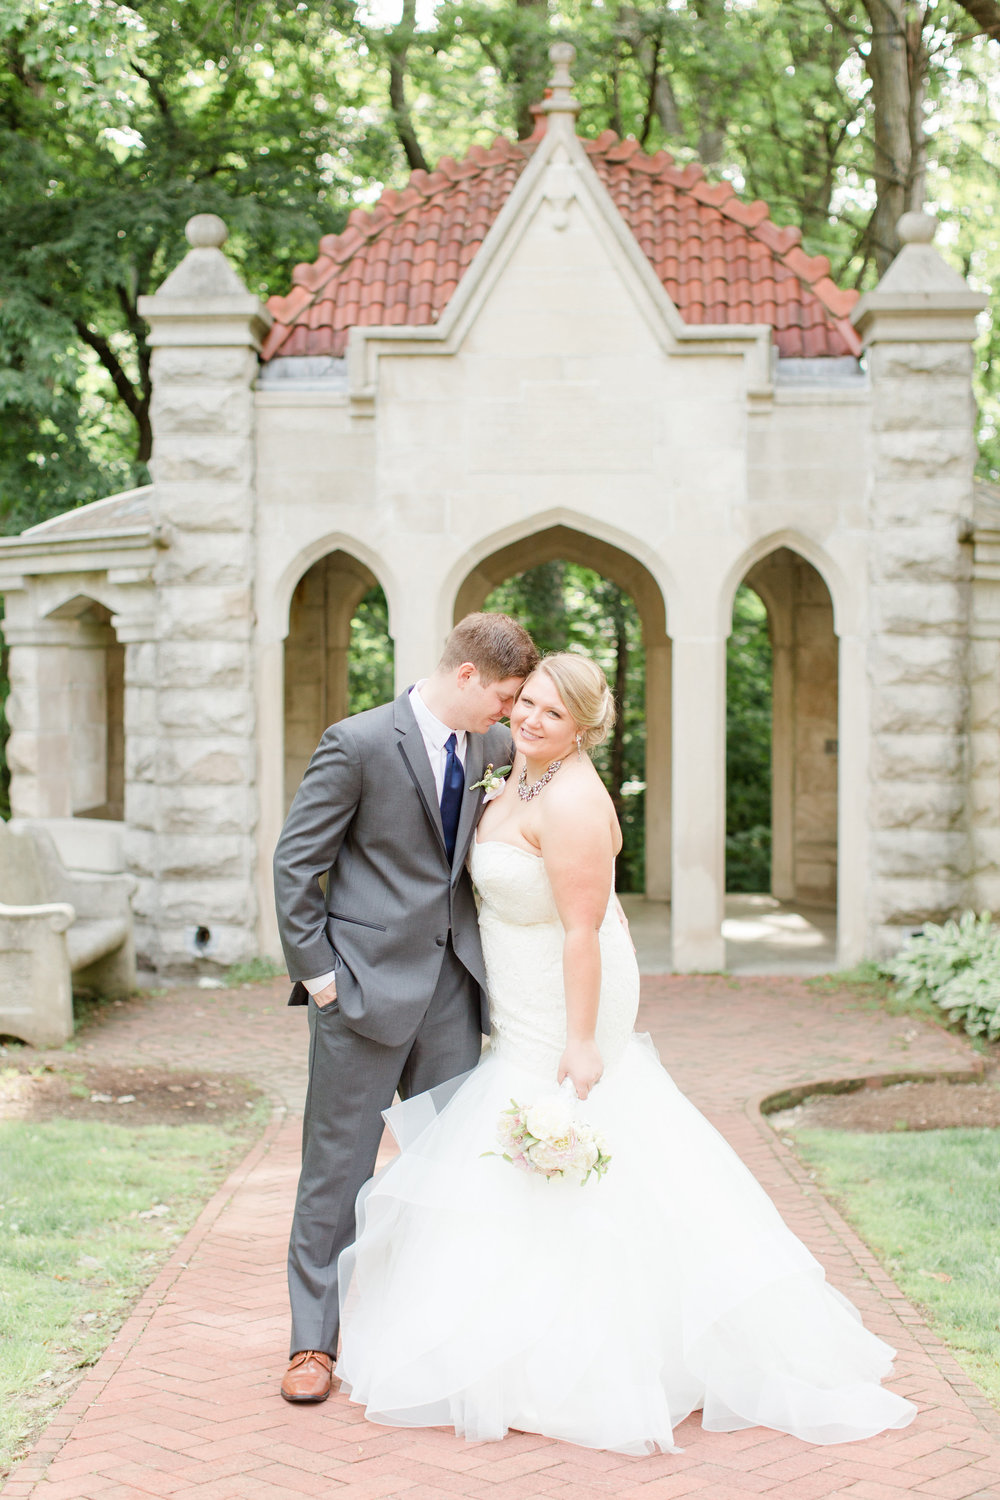 Bri + Aric | Indiana University Wedding at The Rose Well House